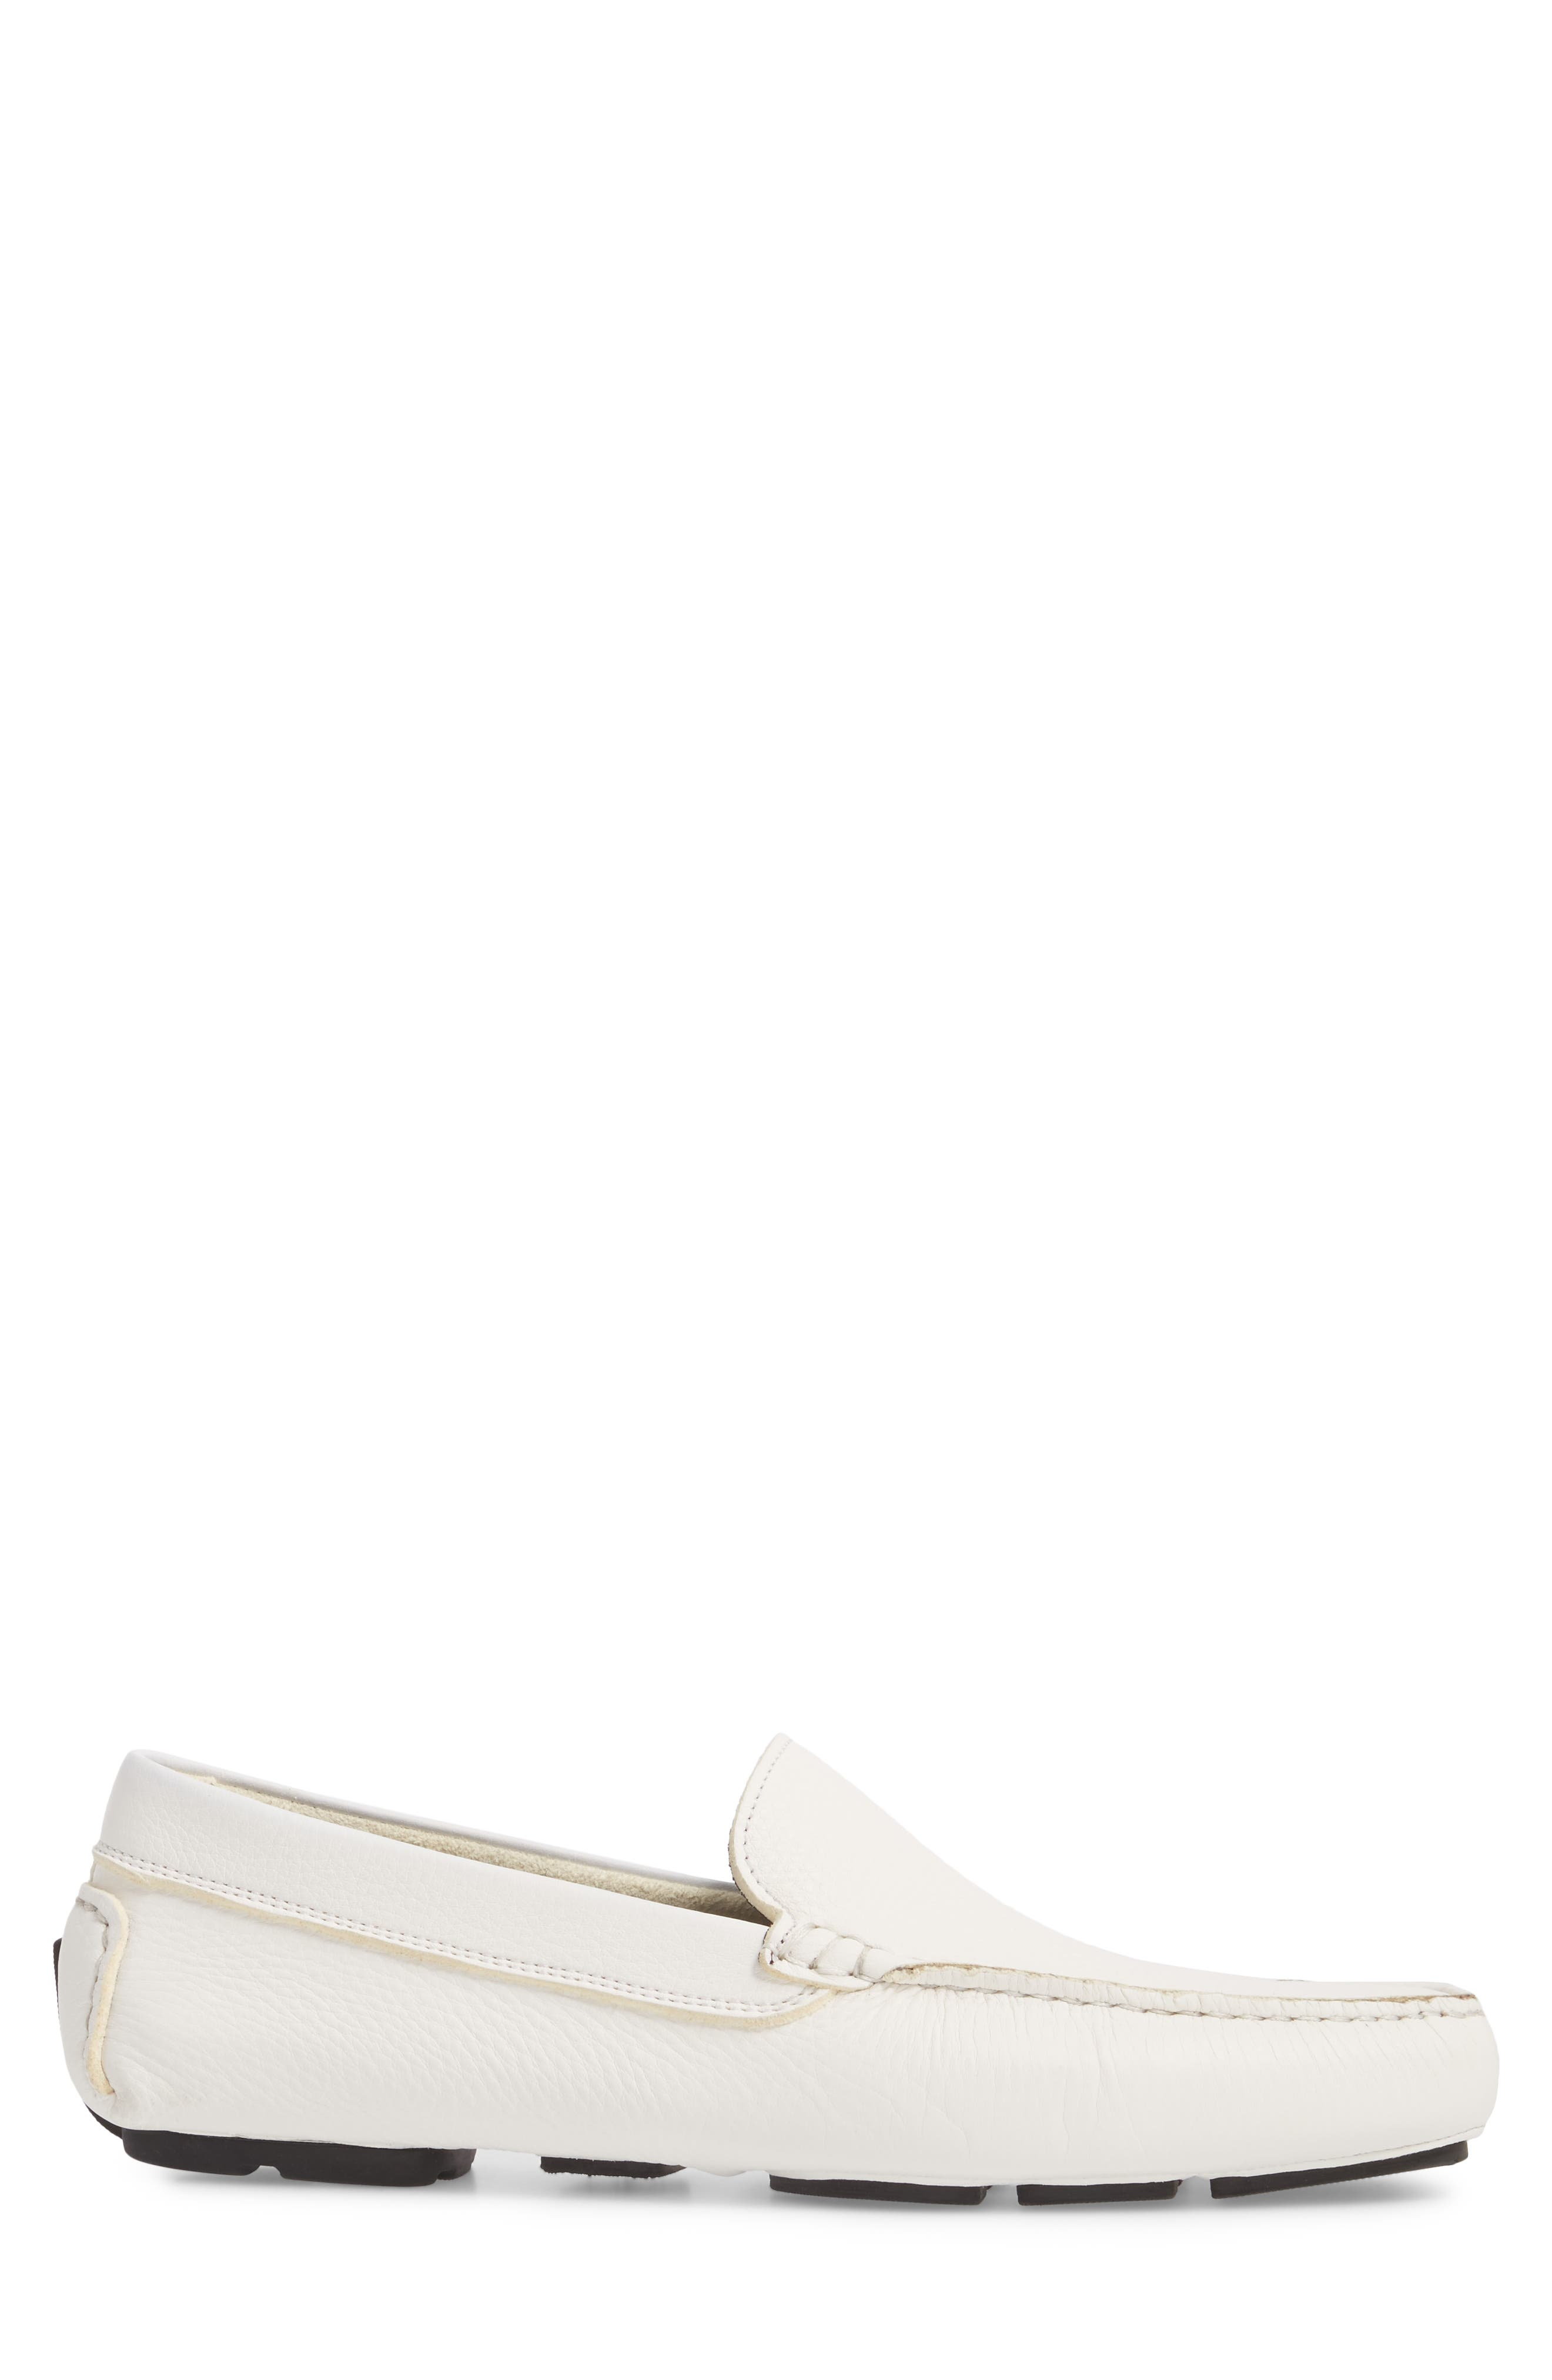 Harlan Driving Loafer,                             Alternate thumbnail 3, color,                             White Leather